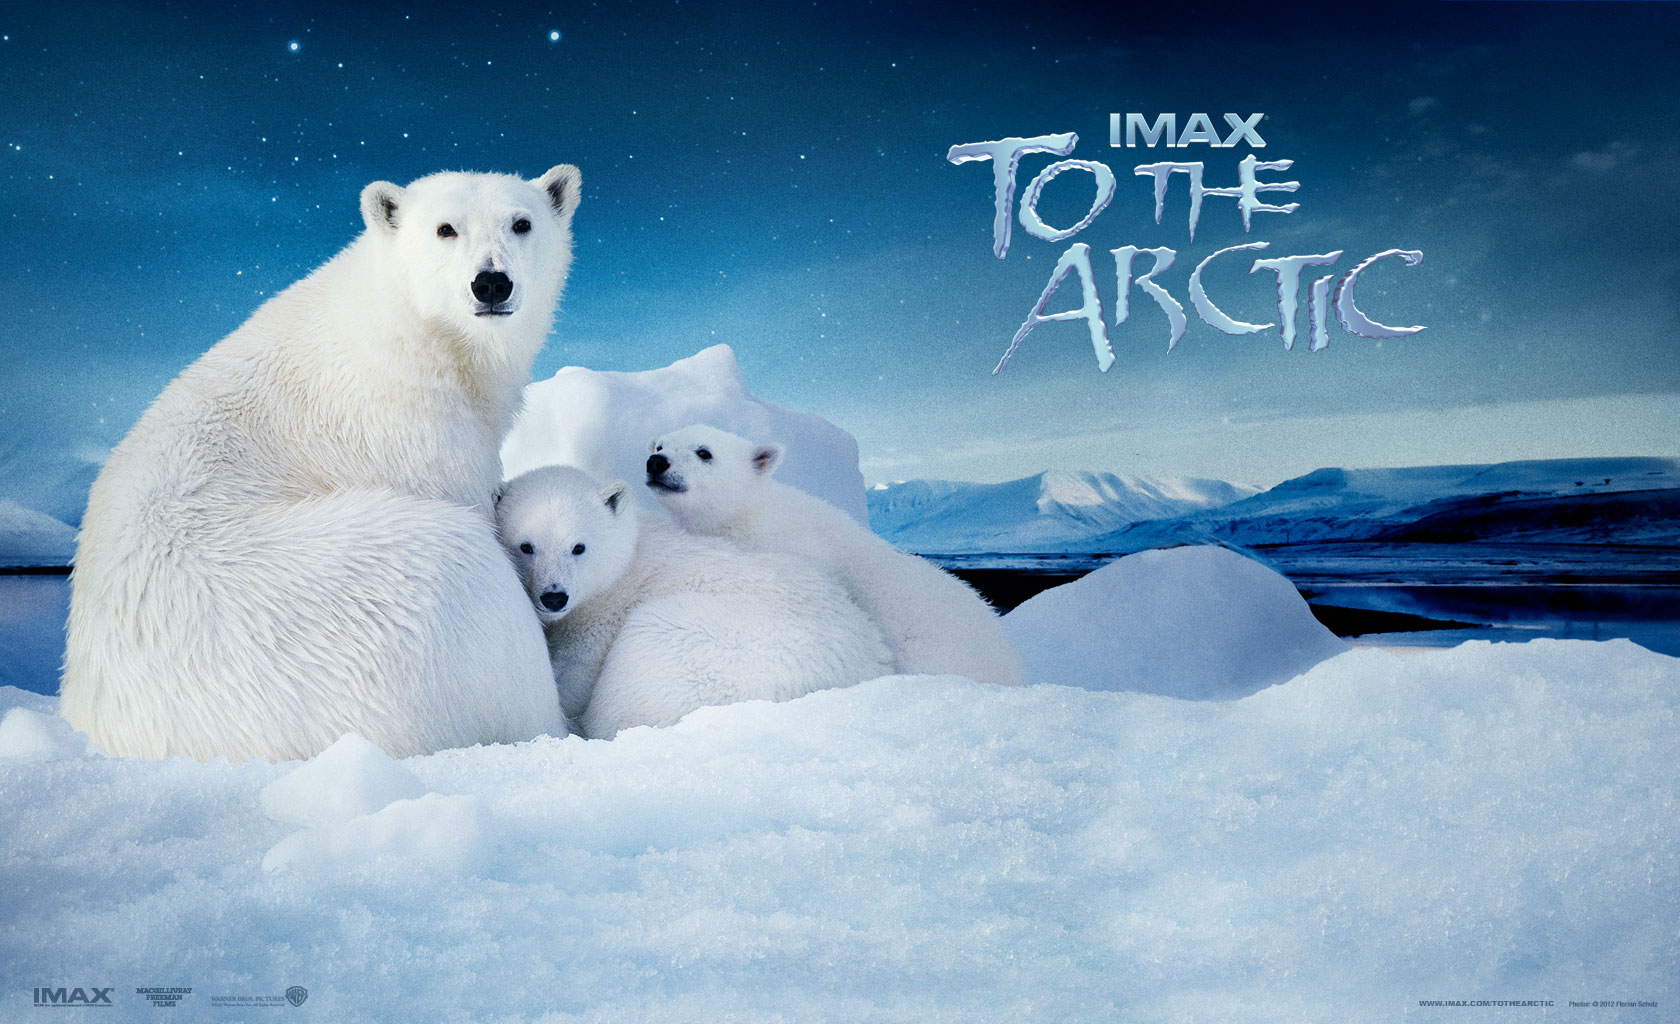 Cute Xmas Wallpapers Free 10 To The Arctic Hd Wallpapers Backgrounds Wallpaper Abyss